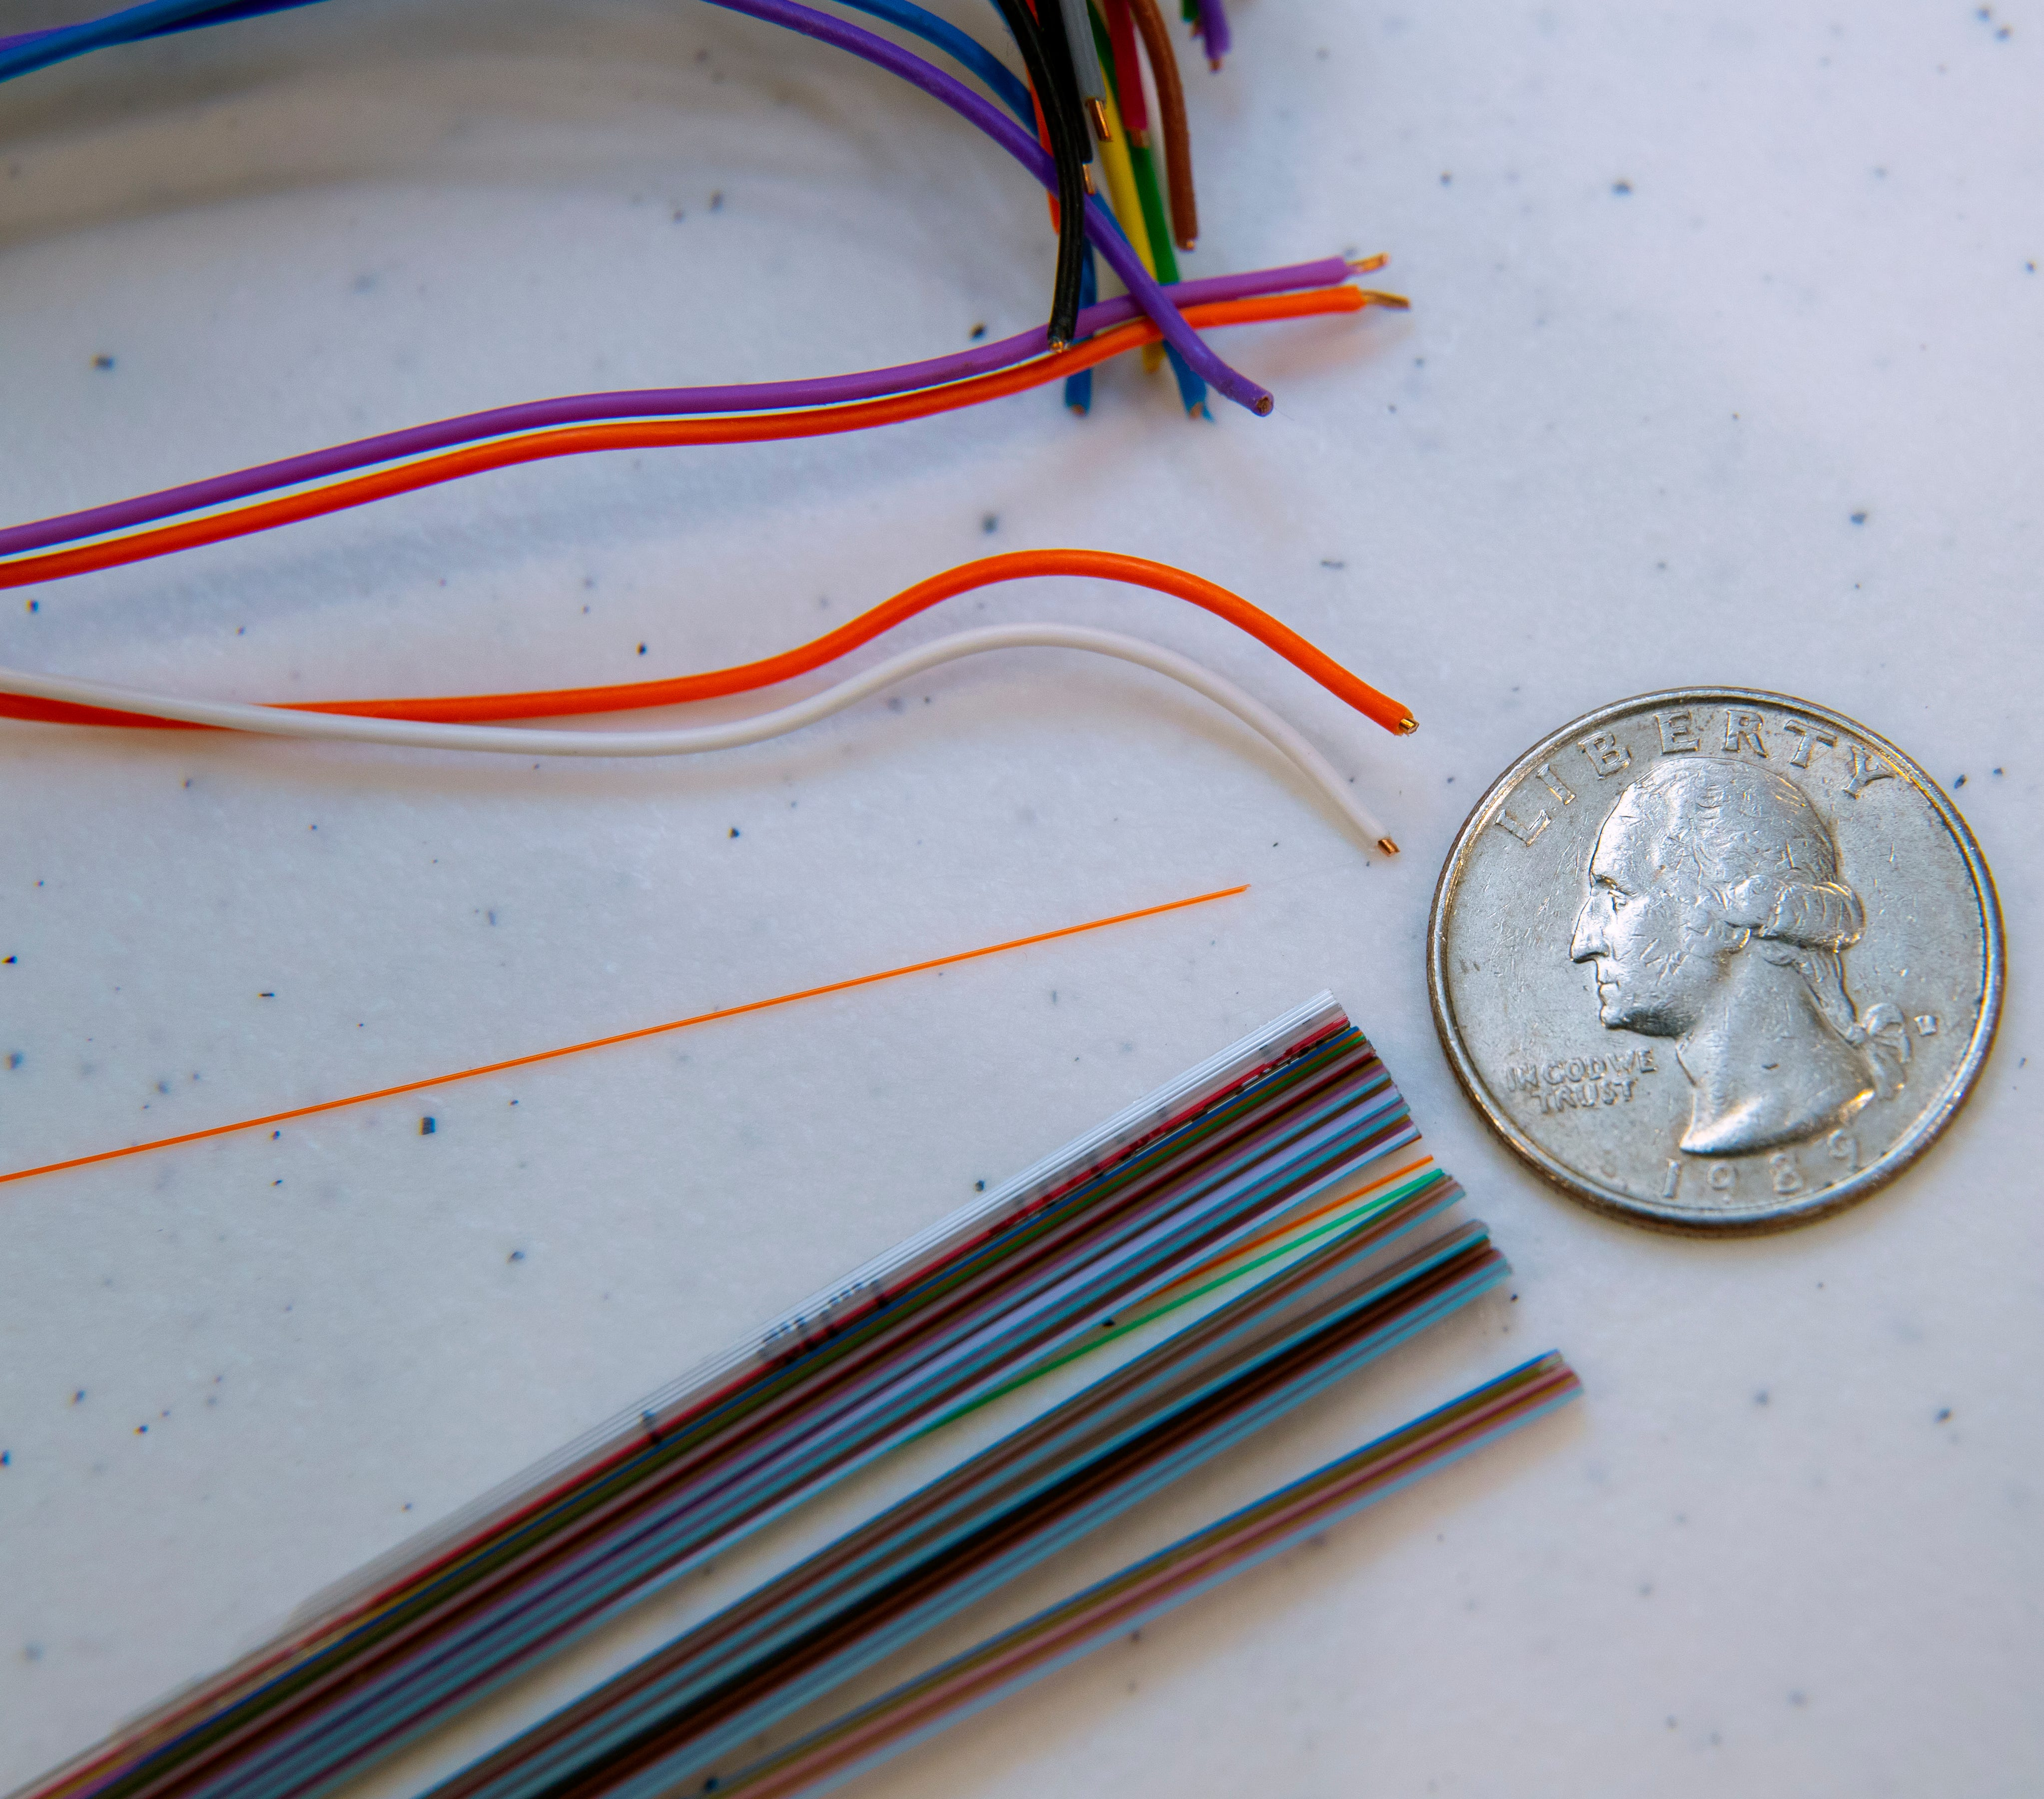 A very thin single strand of fiber-optic cable can support ultra-fast uploads and downloads of 1,000 megabits per second. By comparison, the copper wires would only support a small fraction of those speeds.